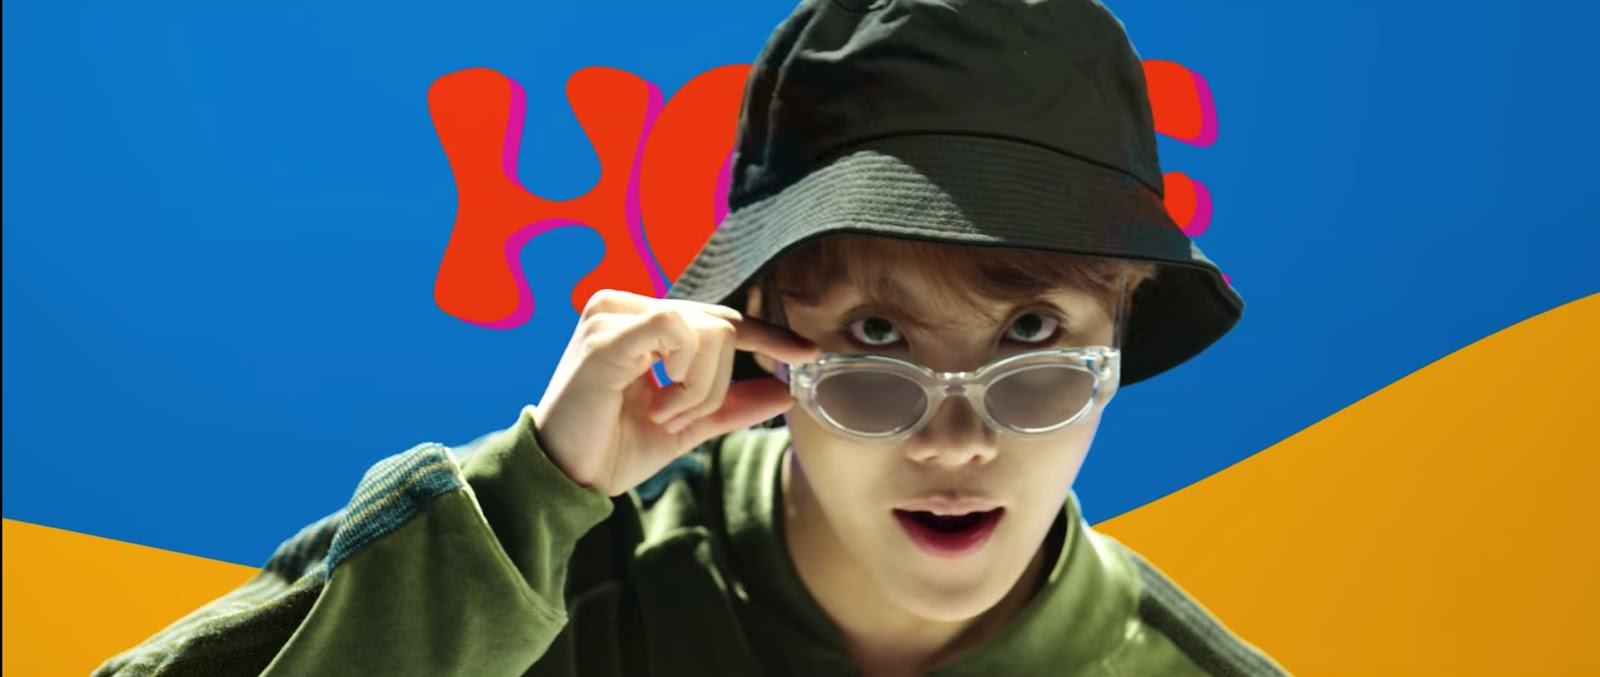 BTS' J-Hope Finally Dropped His Much-Anticipated Mixtape